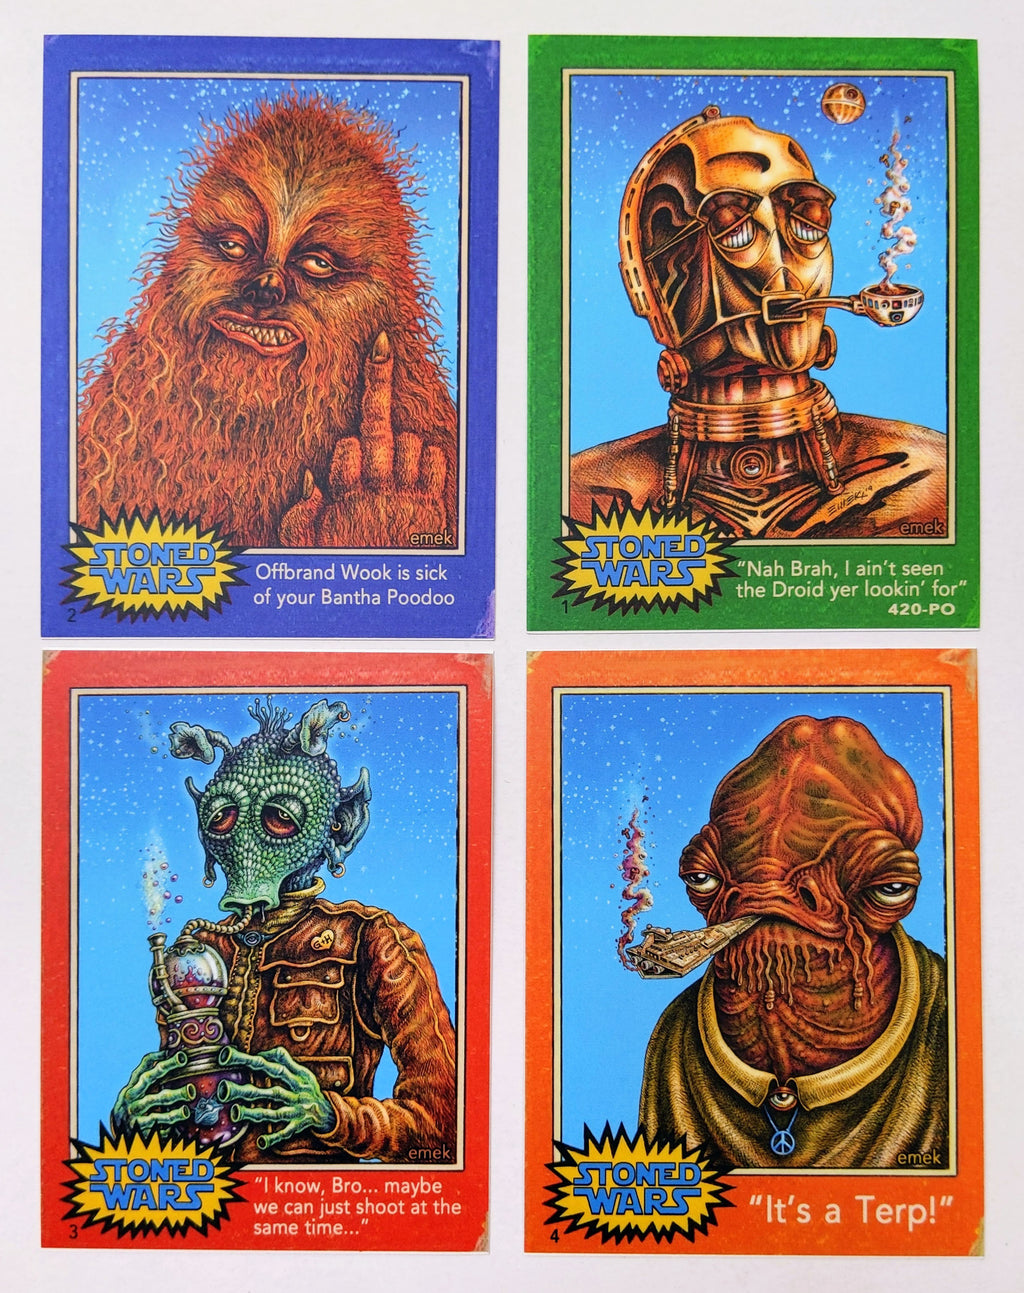 Emek Stoned Wars Weedo & Ackbar Red Sky